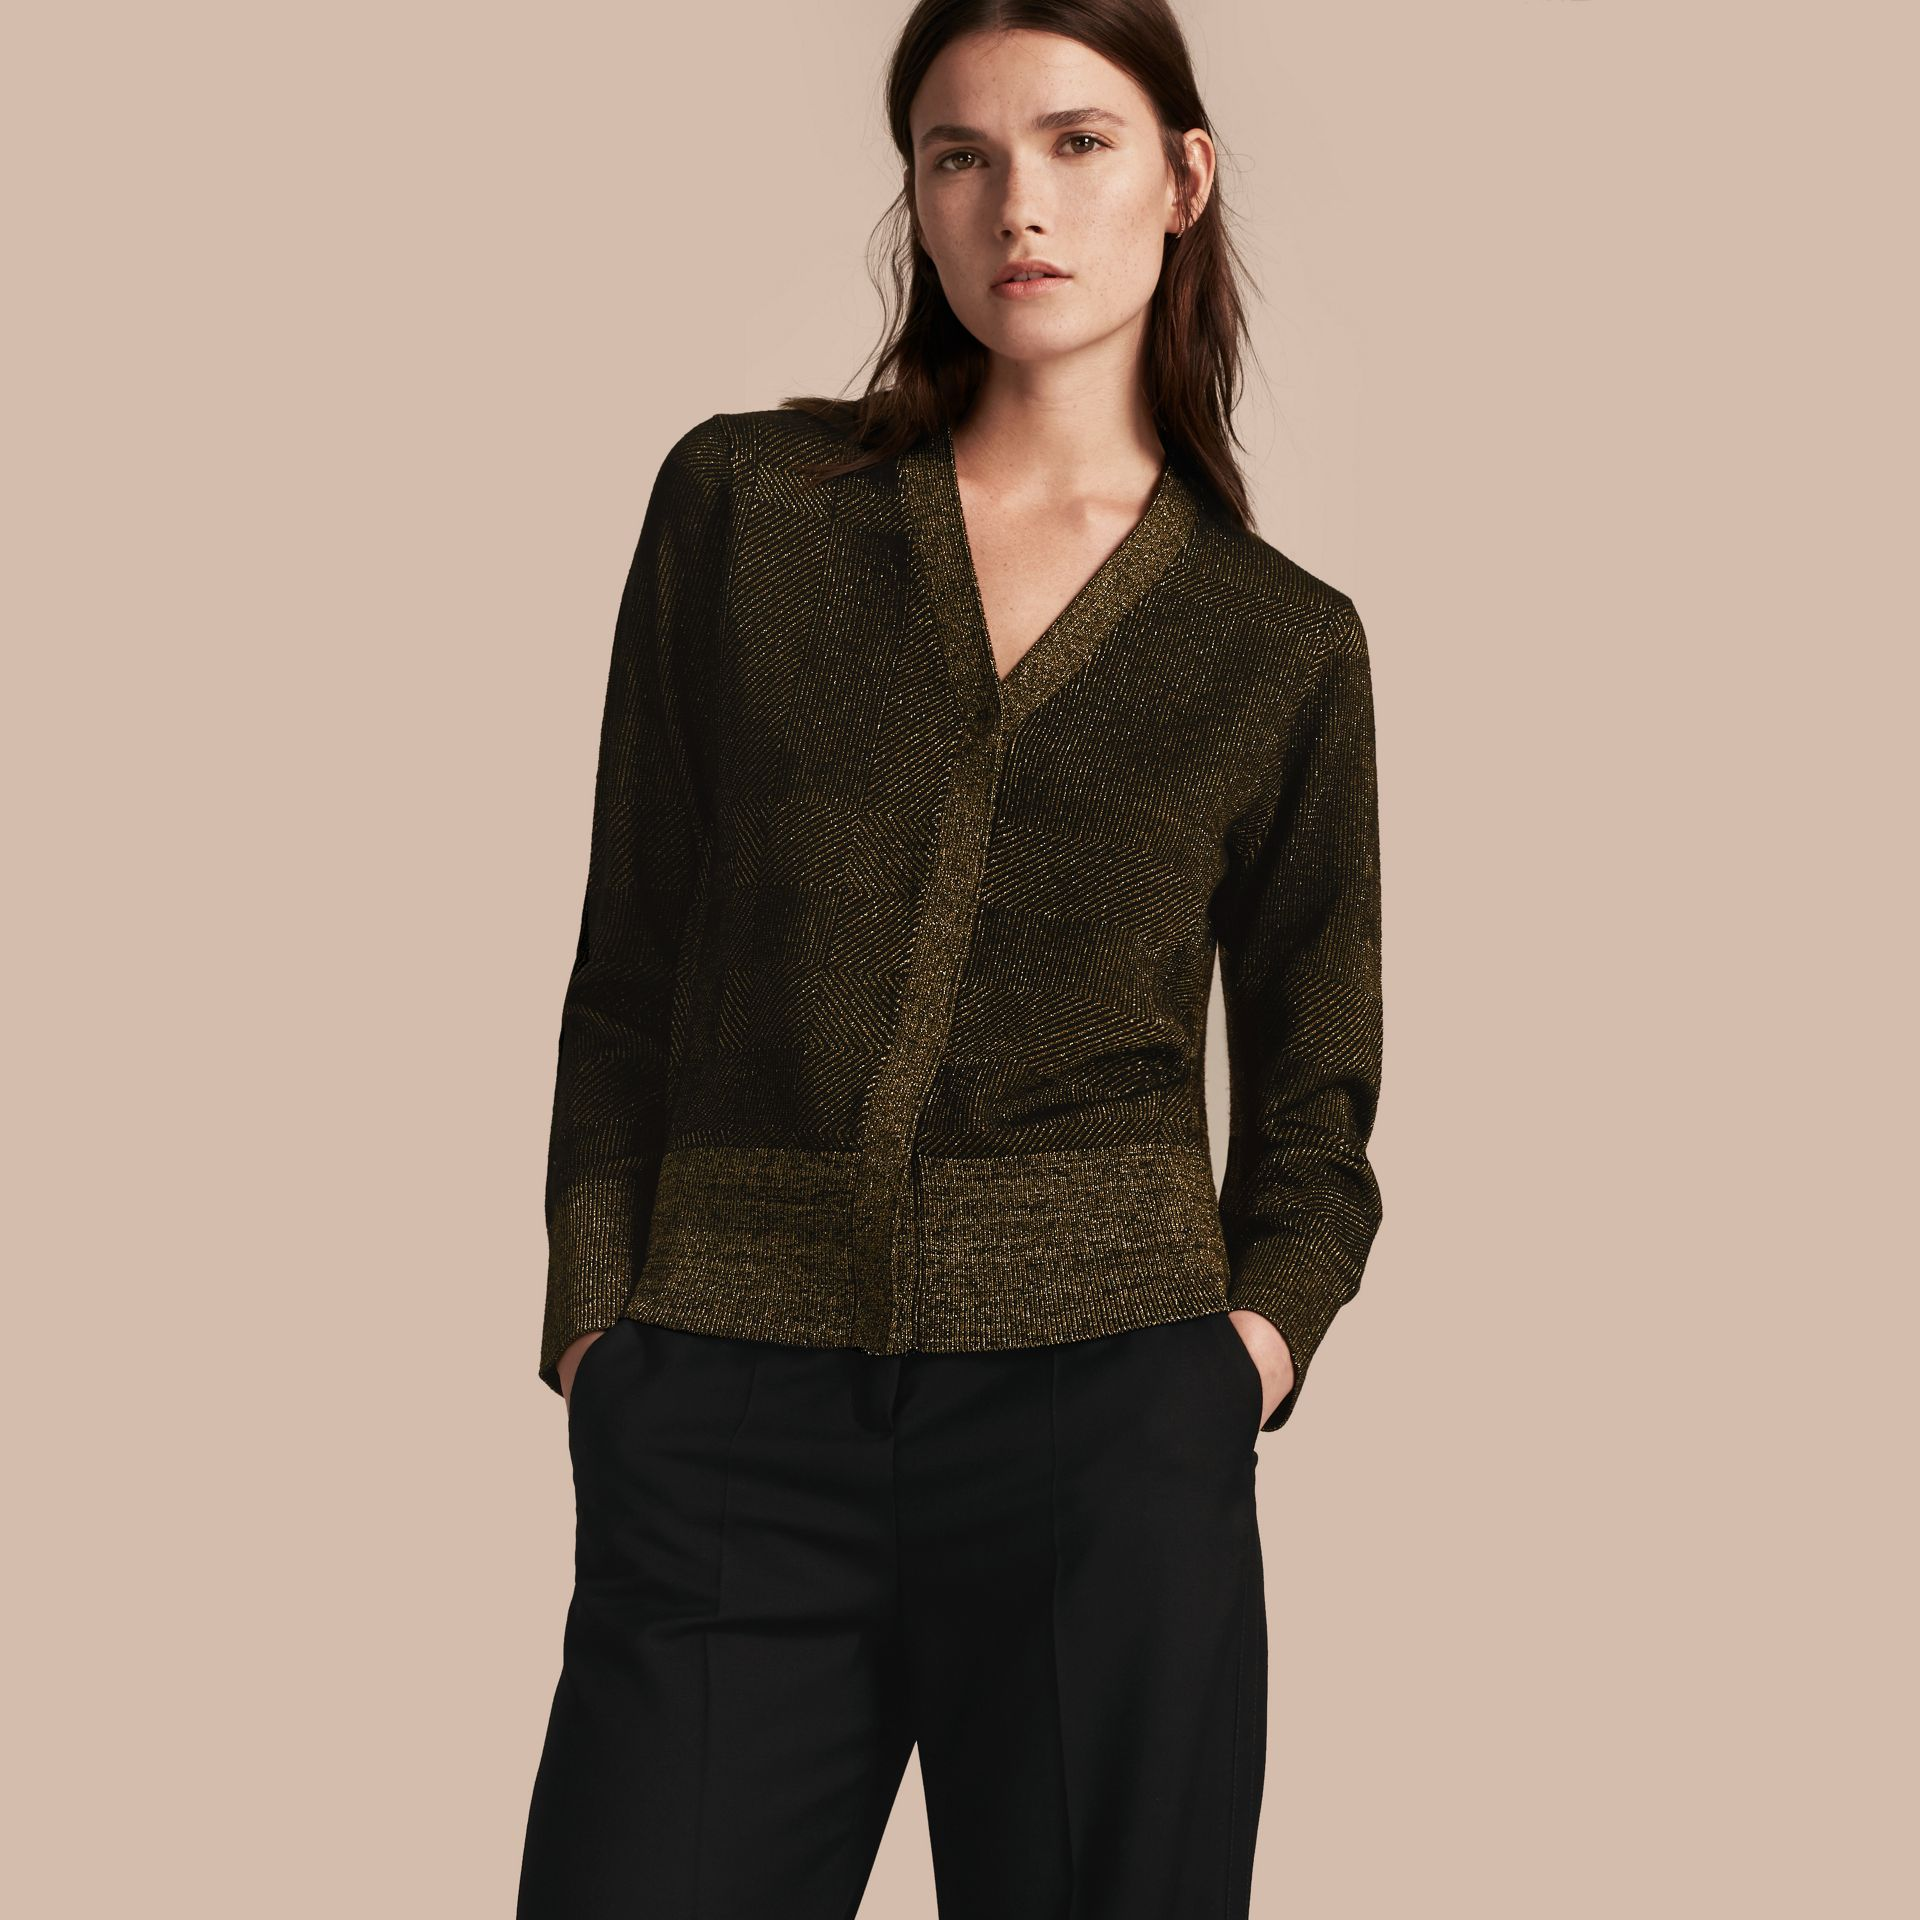 Black Check Merino Wool and Metallic Cardigan - gallery image 1